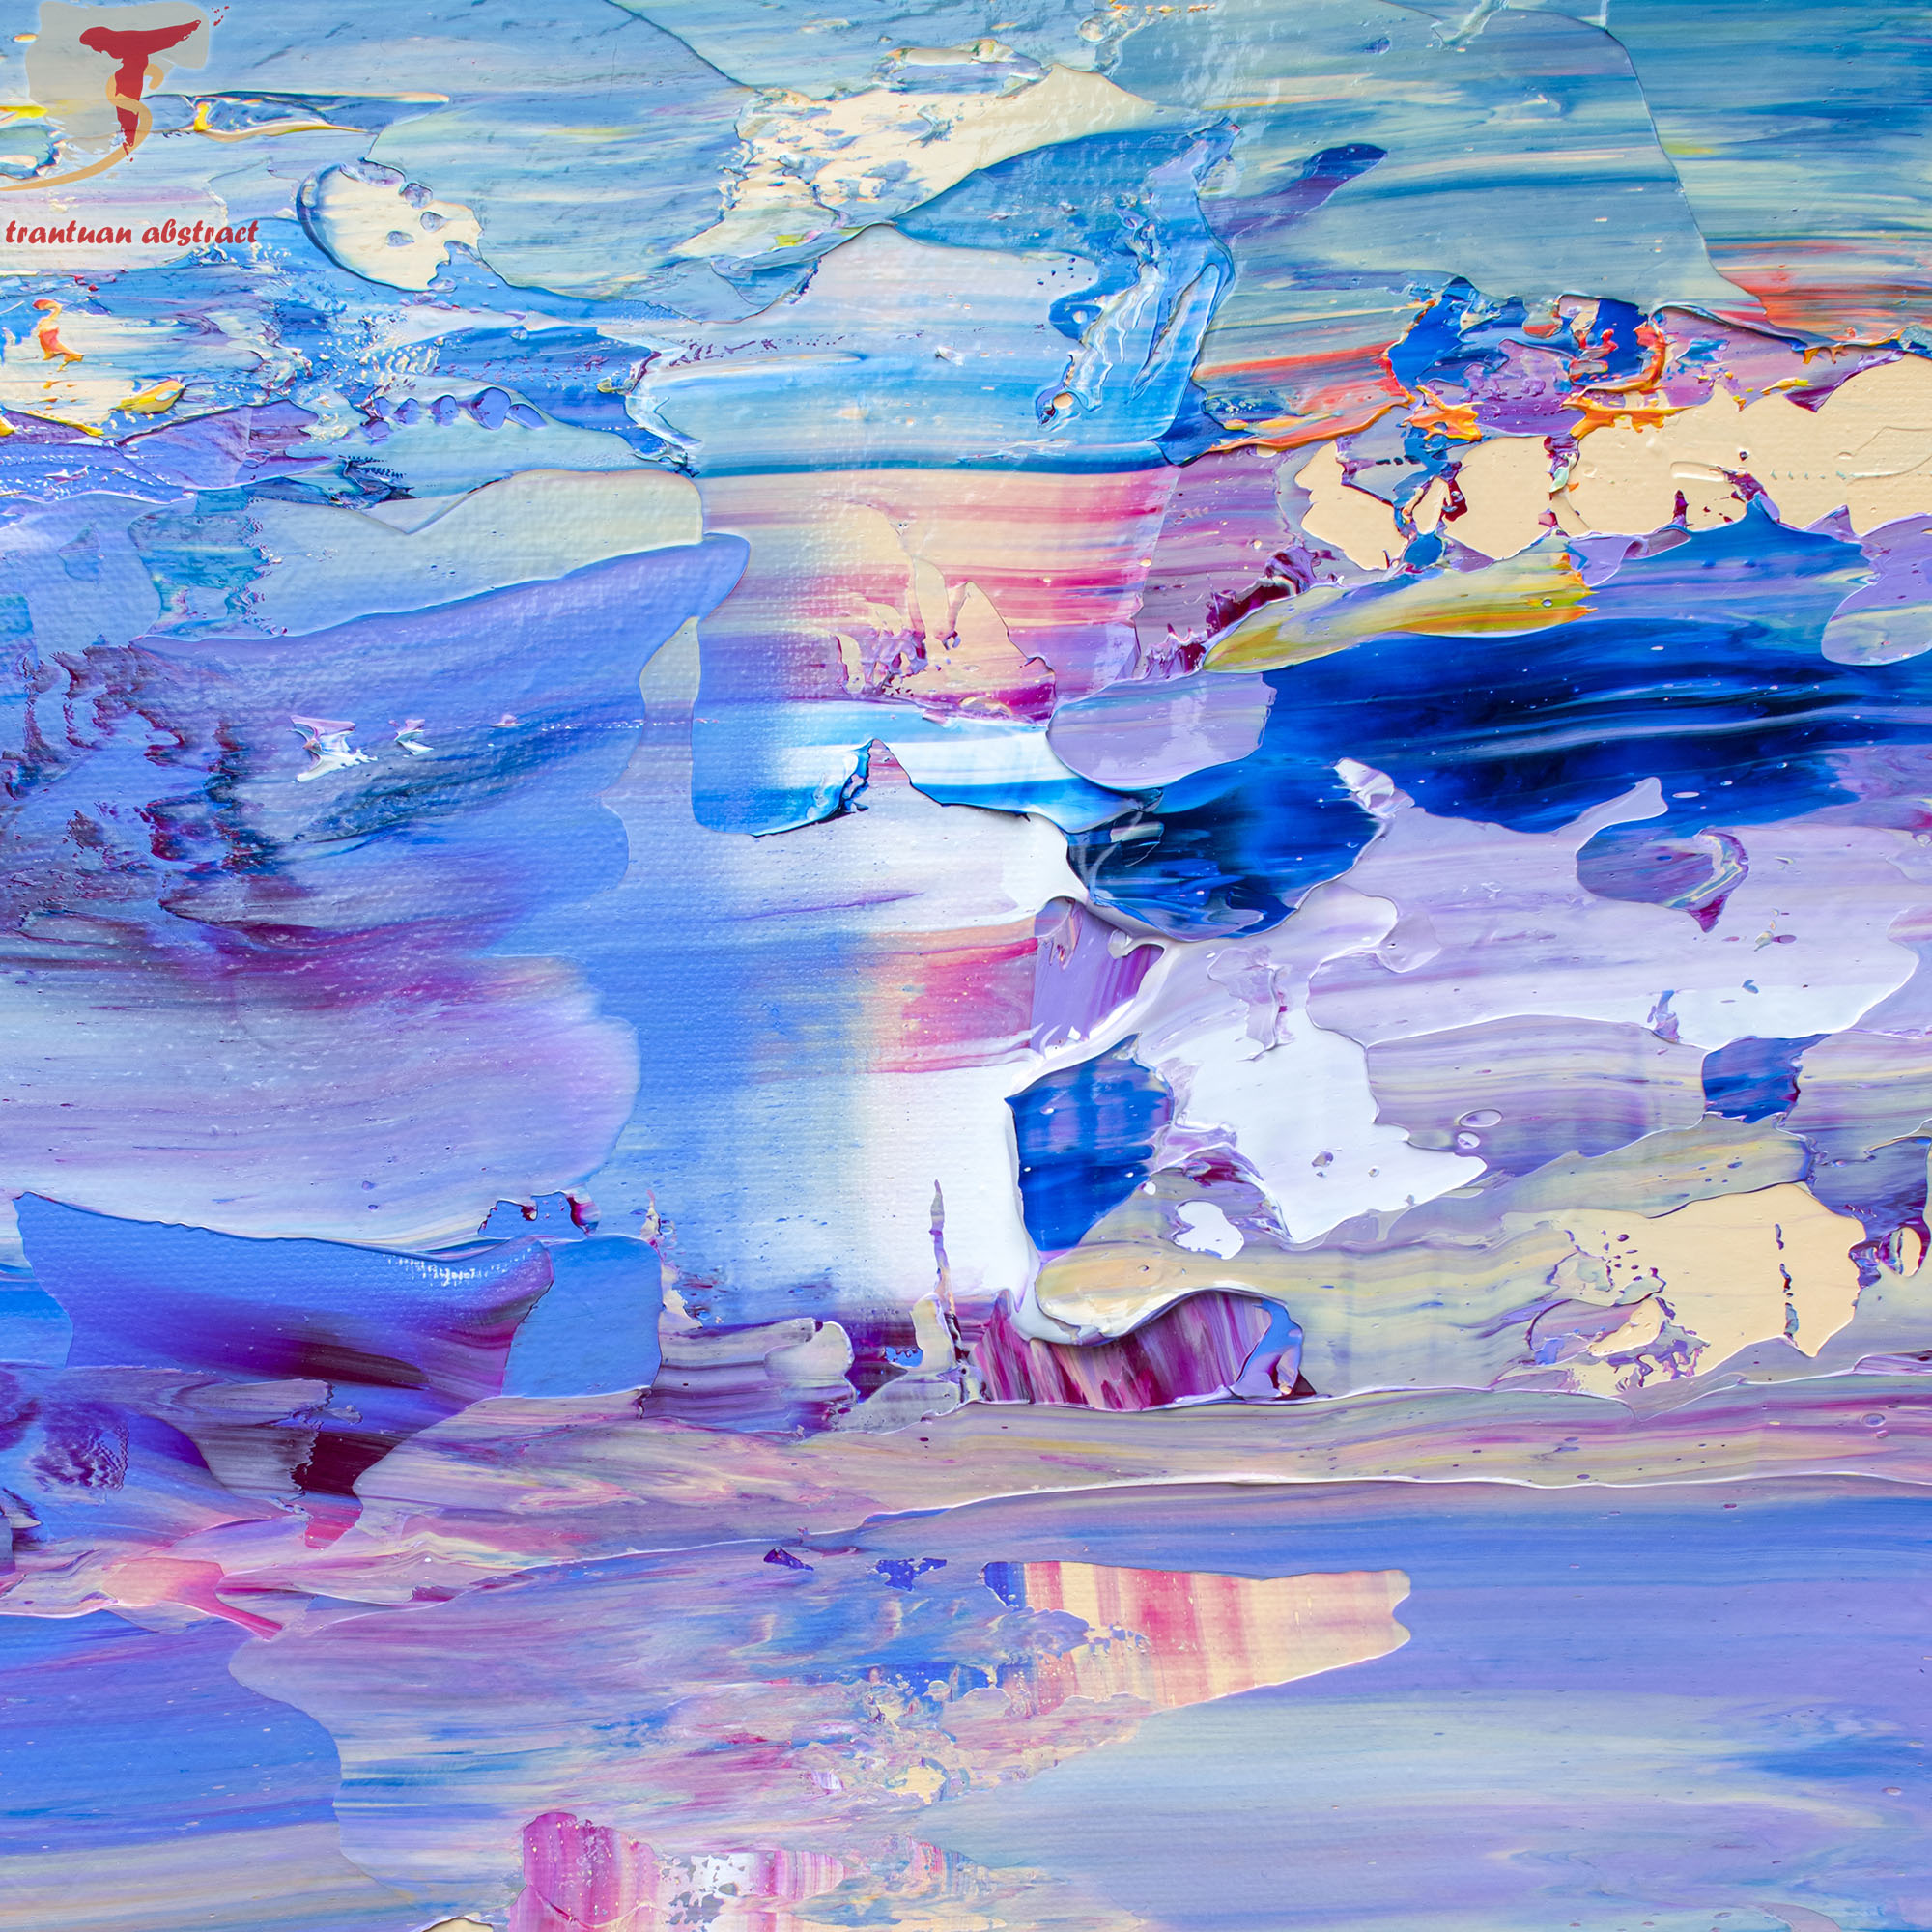 Tran Tuan Abstract Beautiful Day 2021 135 x 80 x 5 cm Acrylic on Canvas Painting Detail